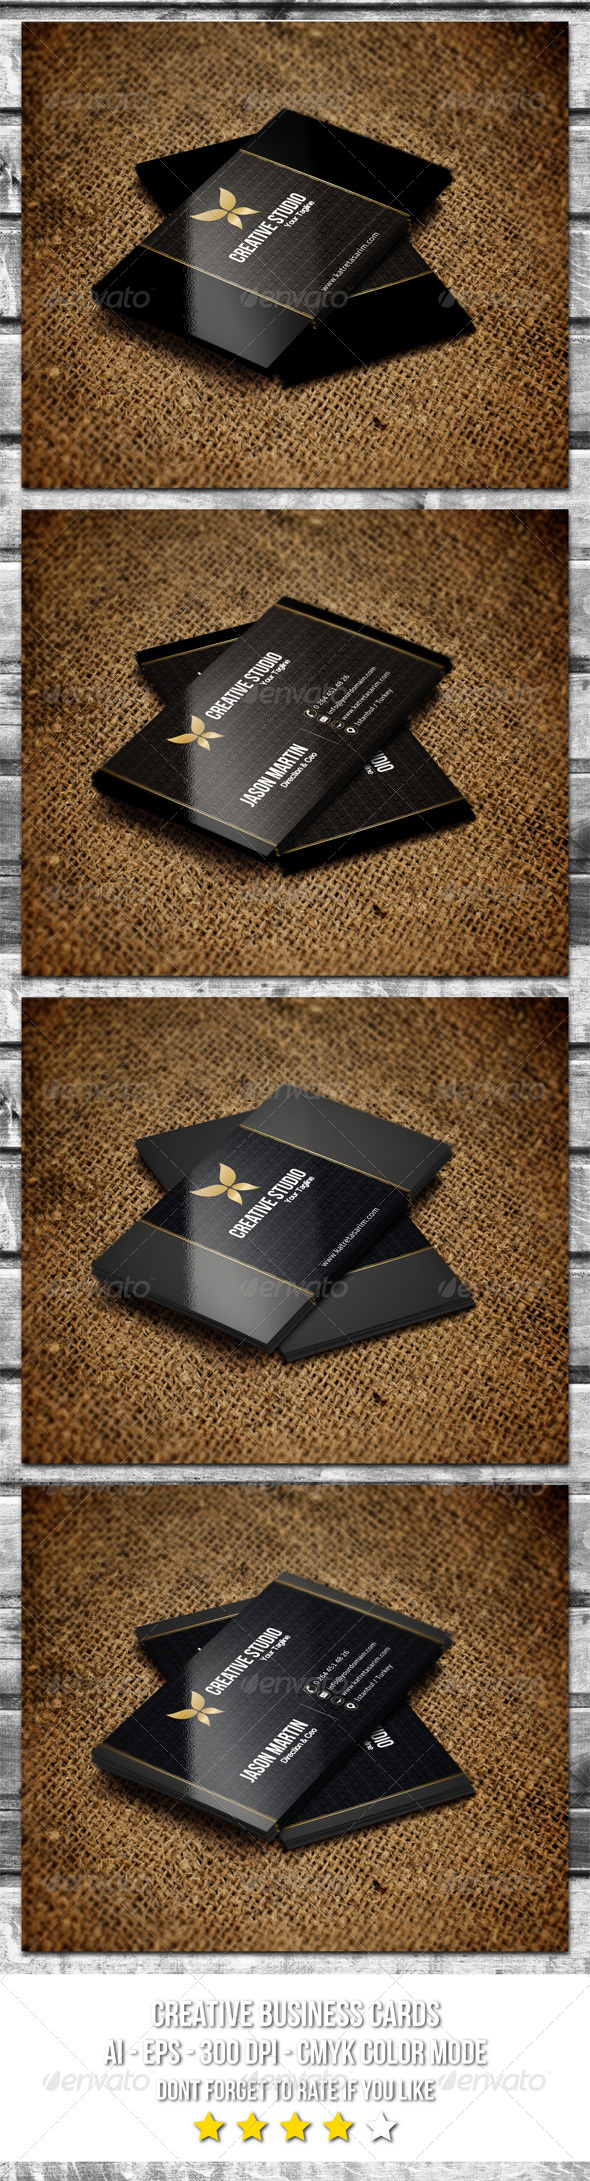 GraphicRiver Creative Business Cards 57 6357365